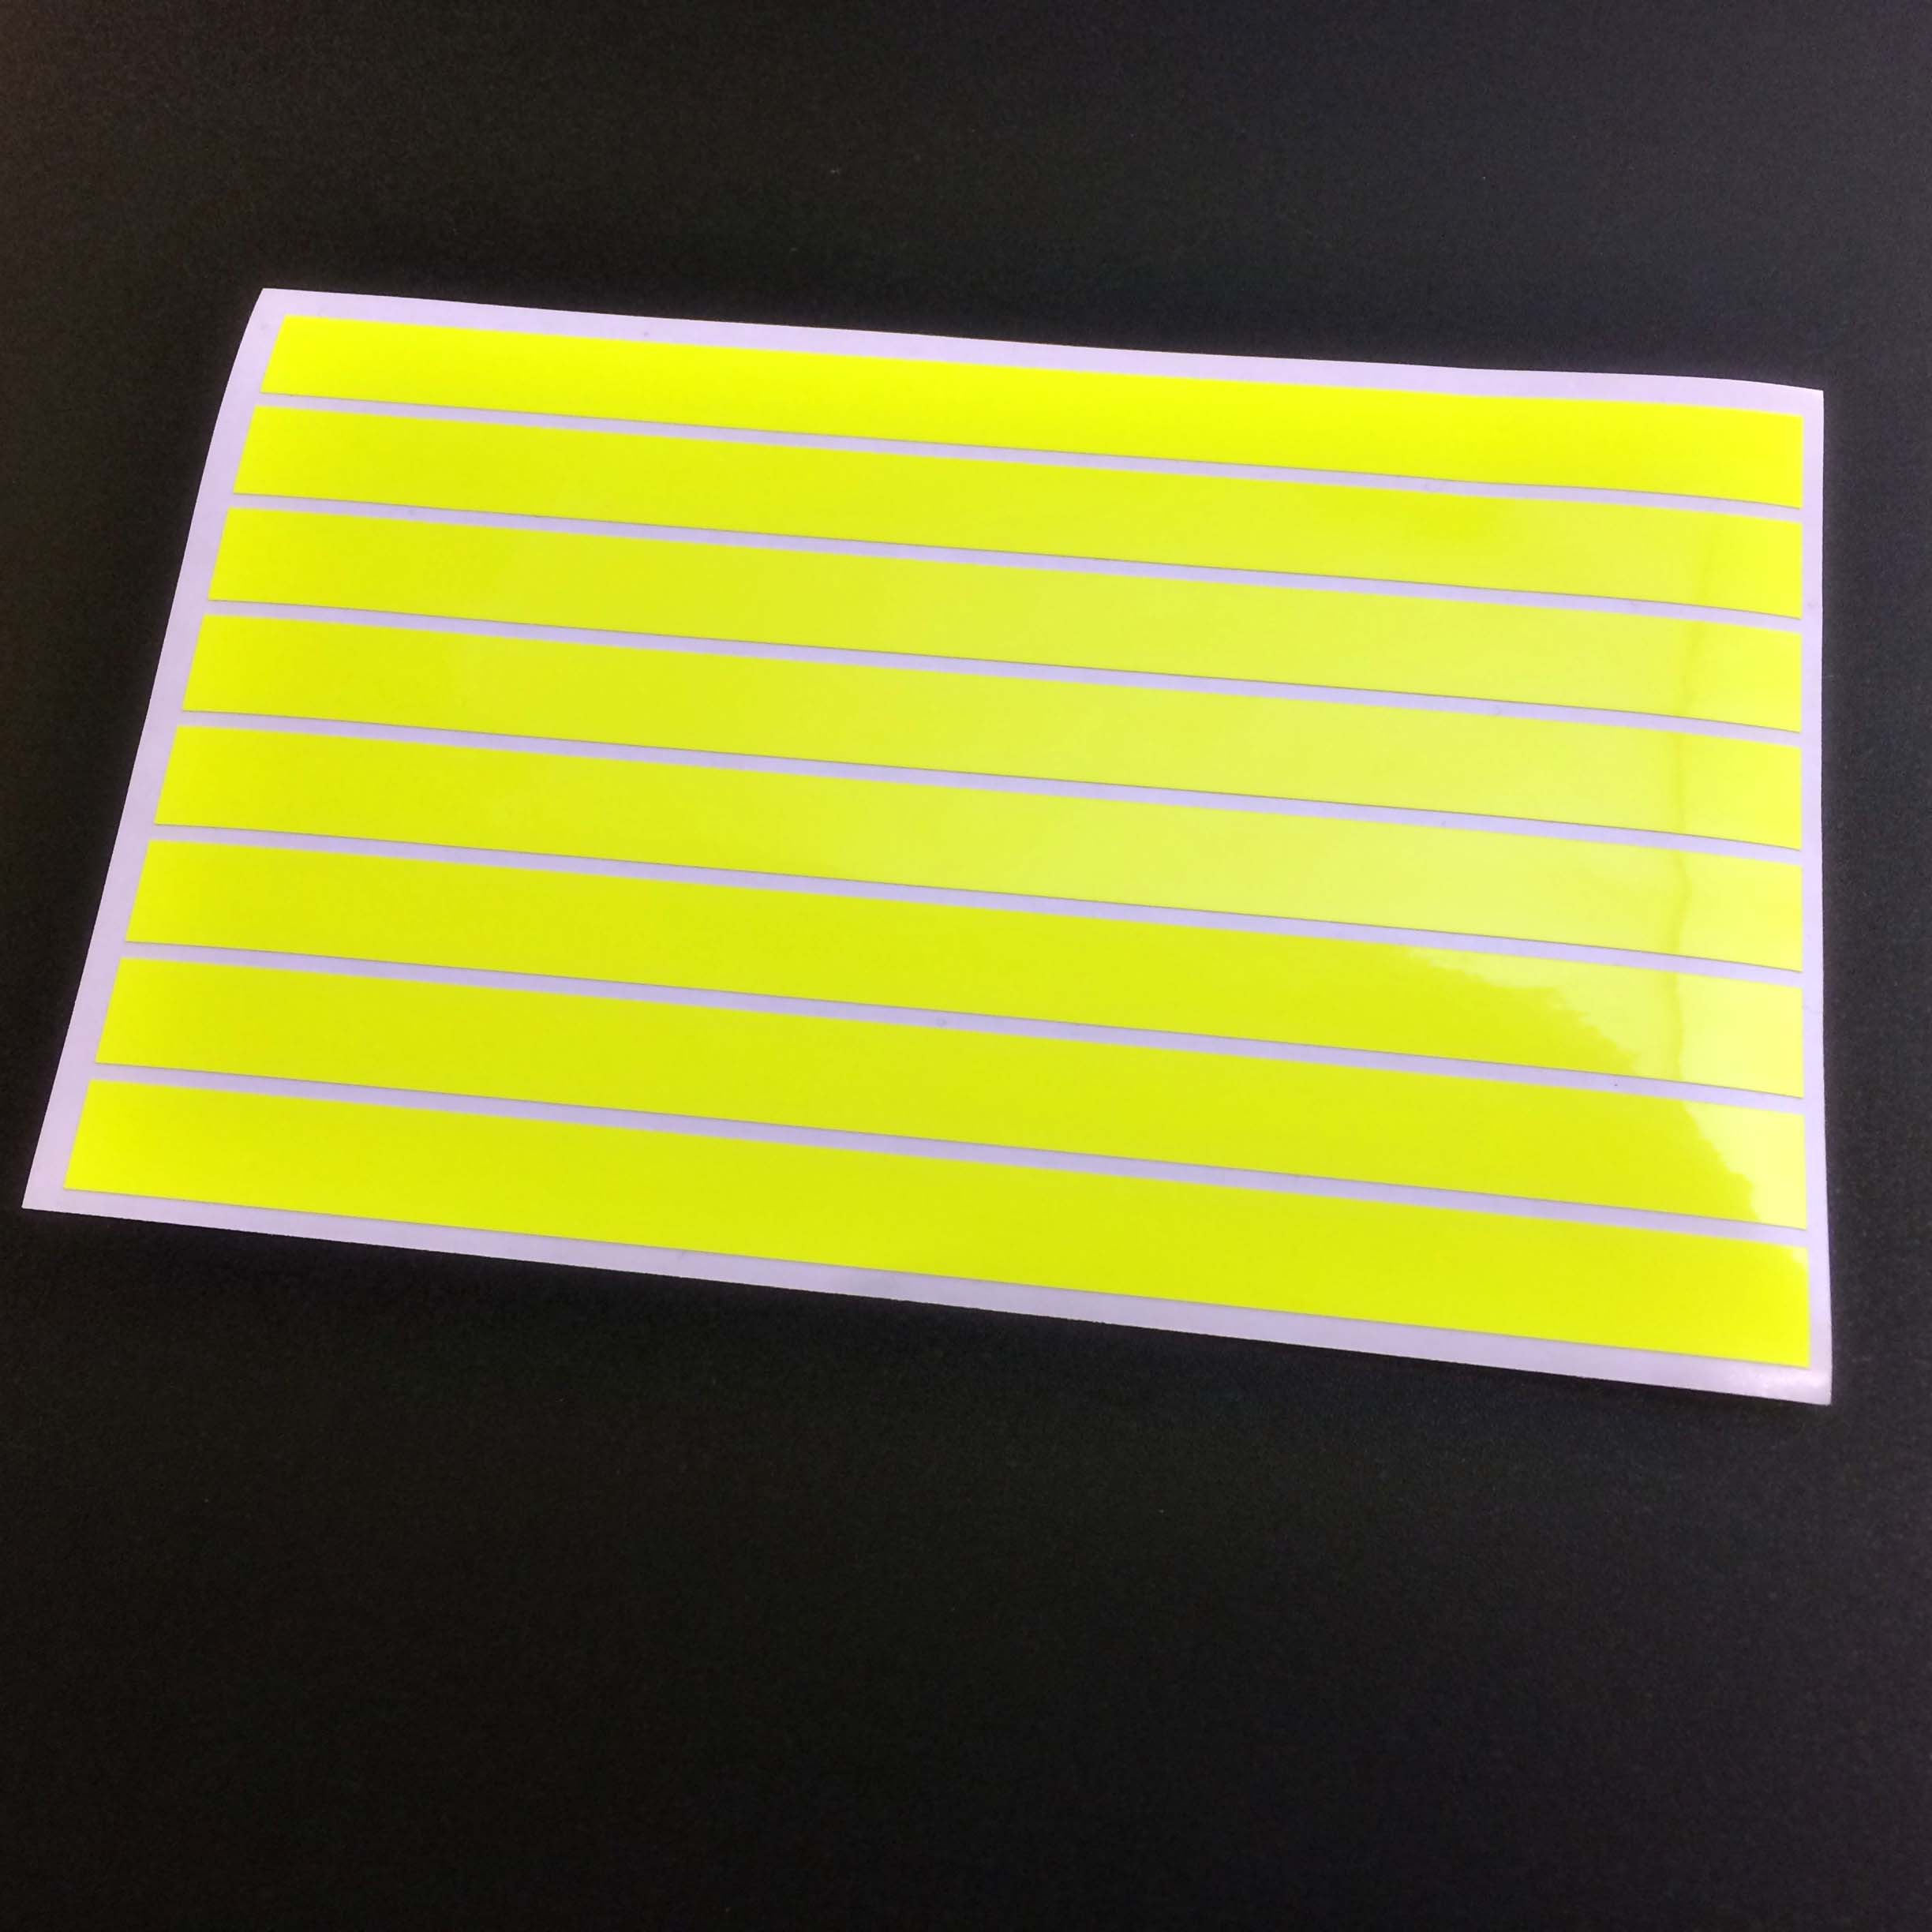 Reflective or Fluorescent Strips Stickers